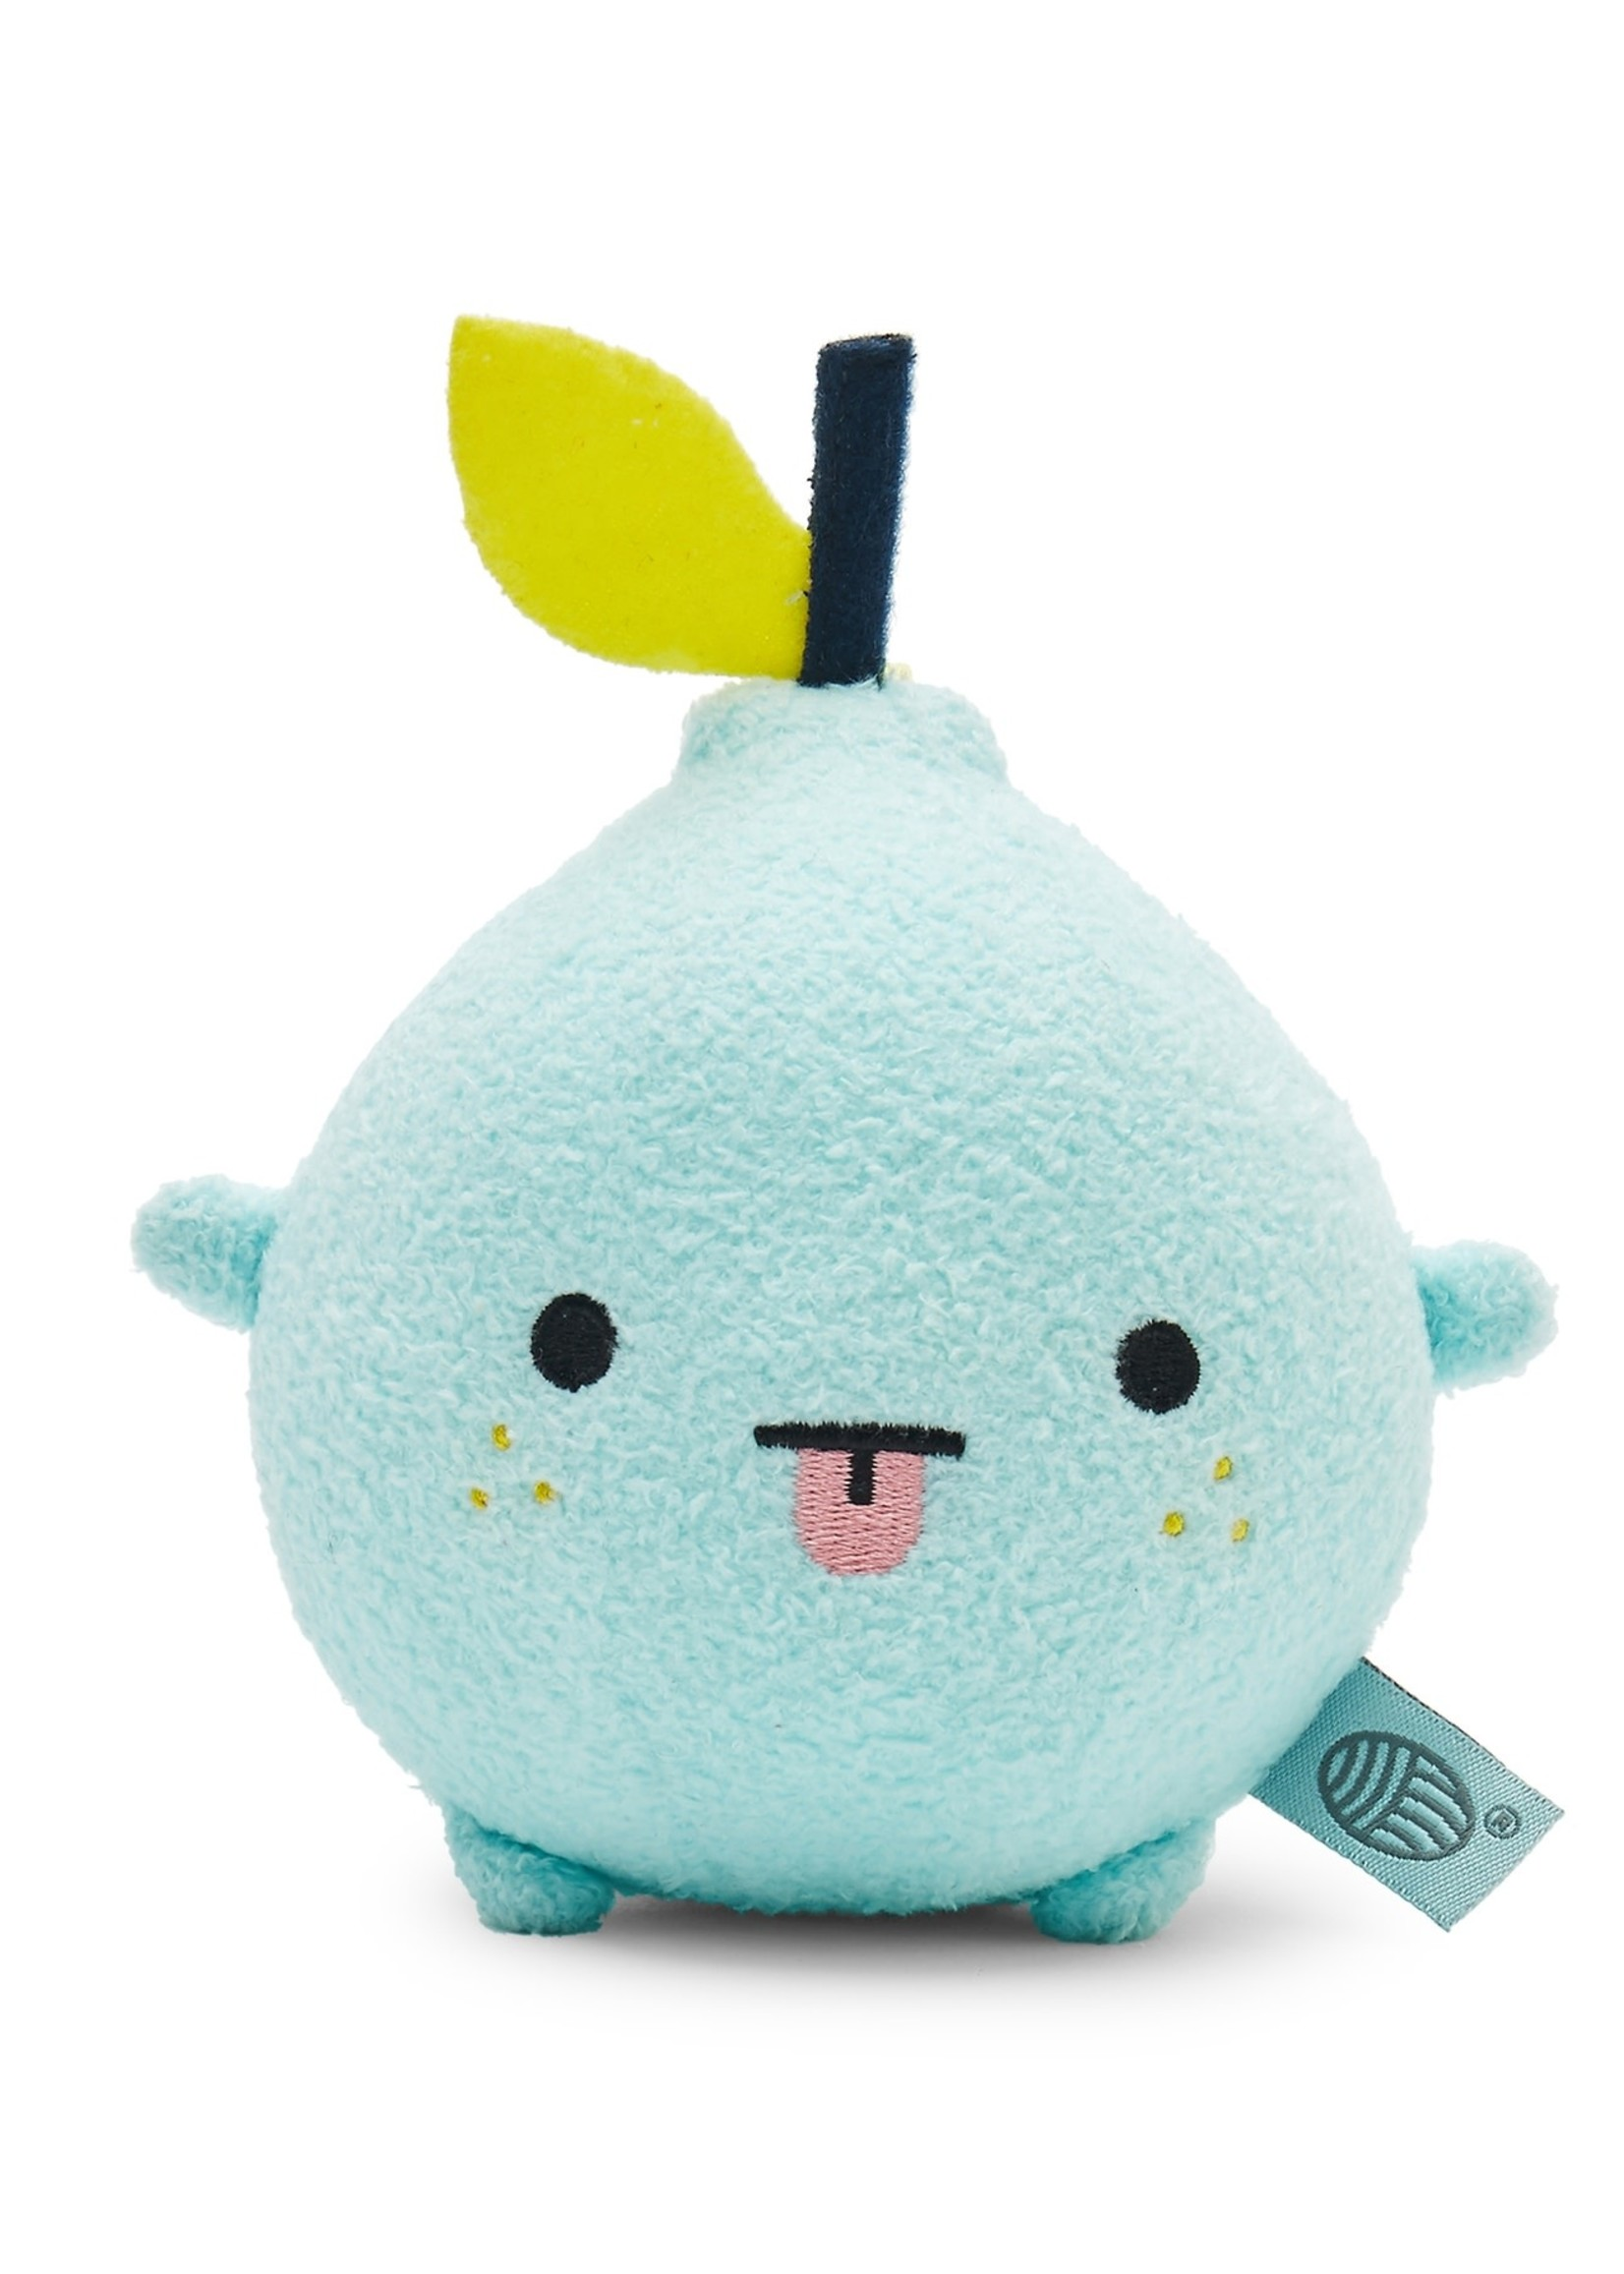 NOODOLL RICEPEAR PEAR